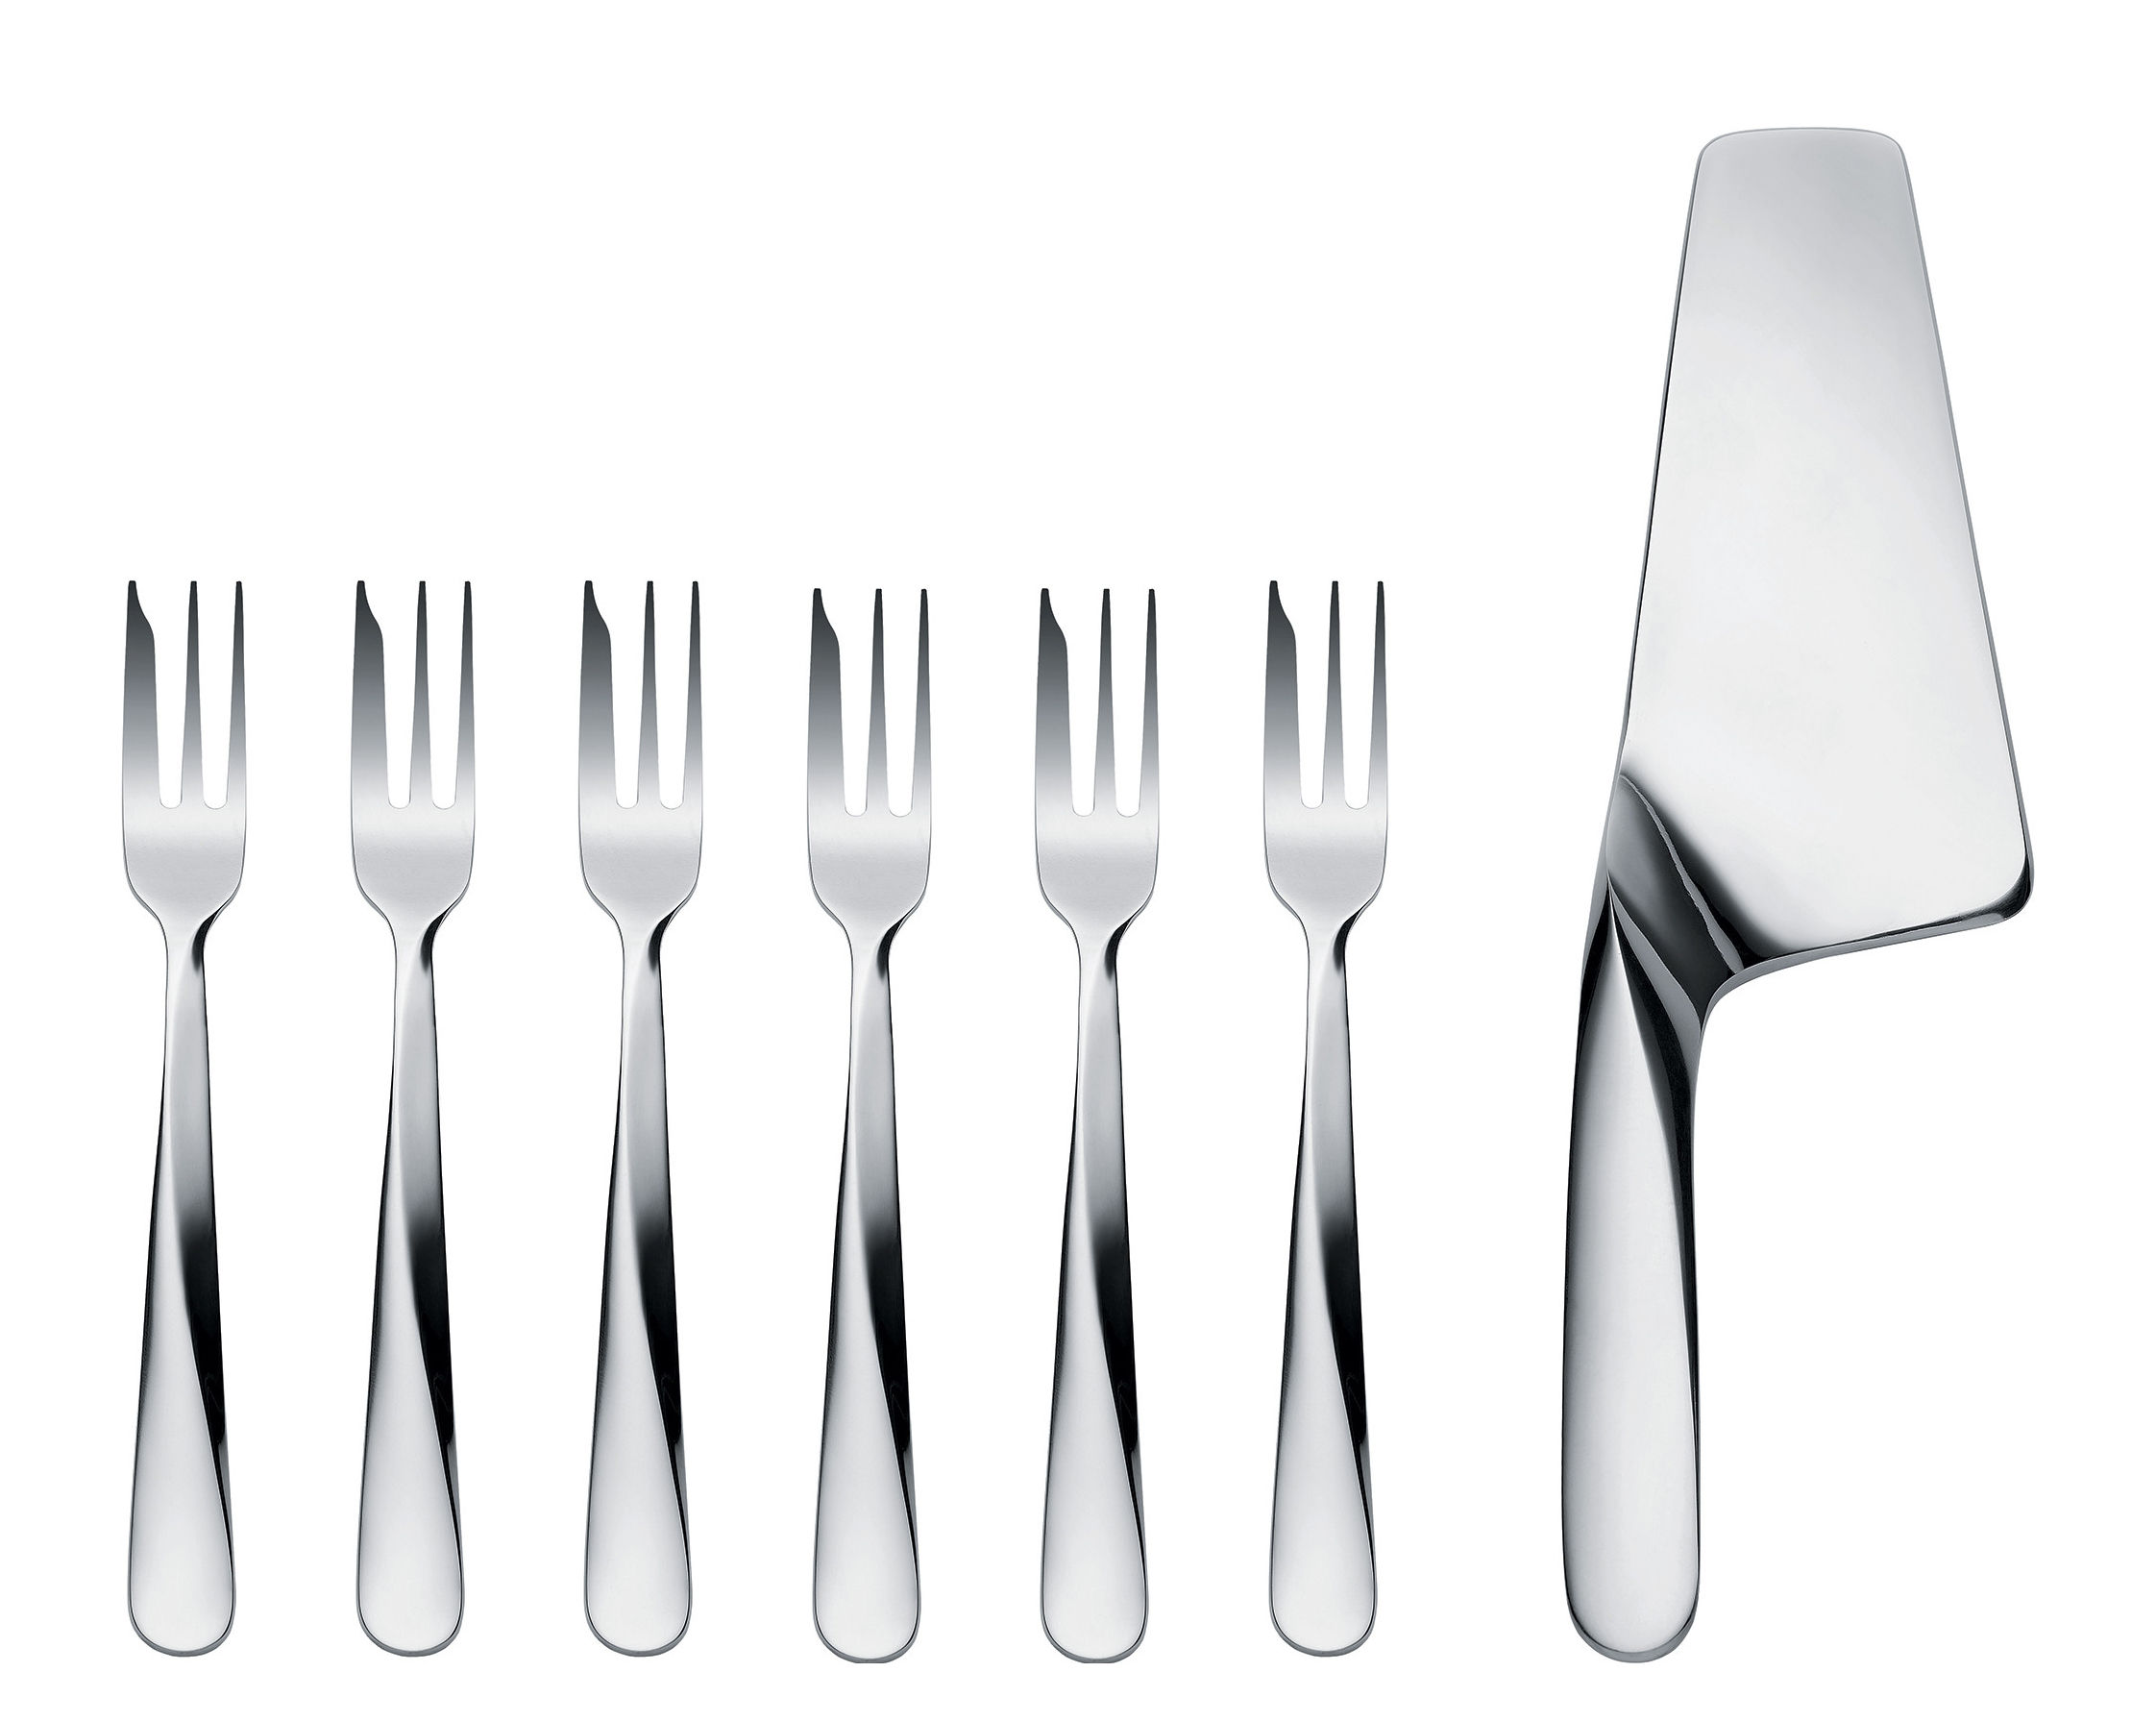 Tableware - Cutlery - Giro Cutlery set - For dessert 7 pieces by Alessi - Steel - Stainless steel